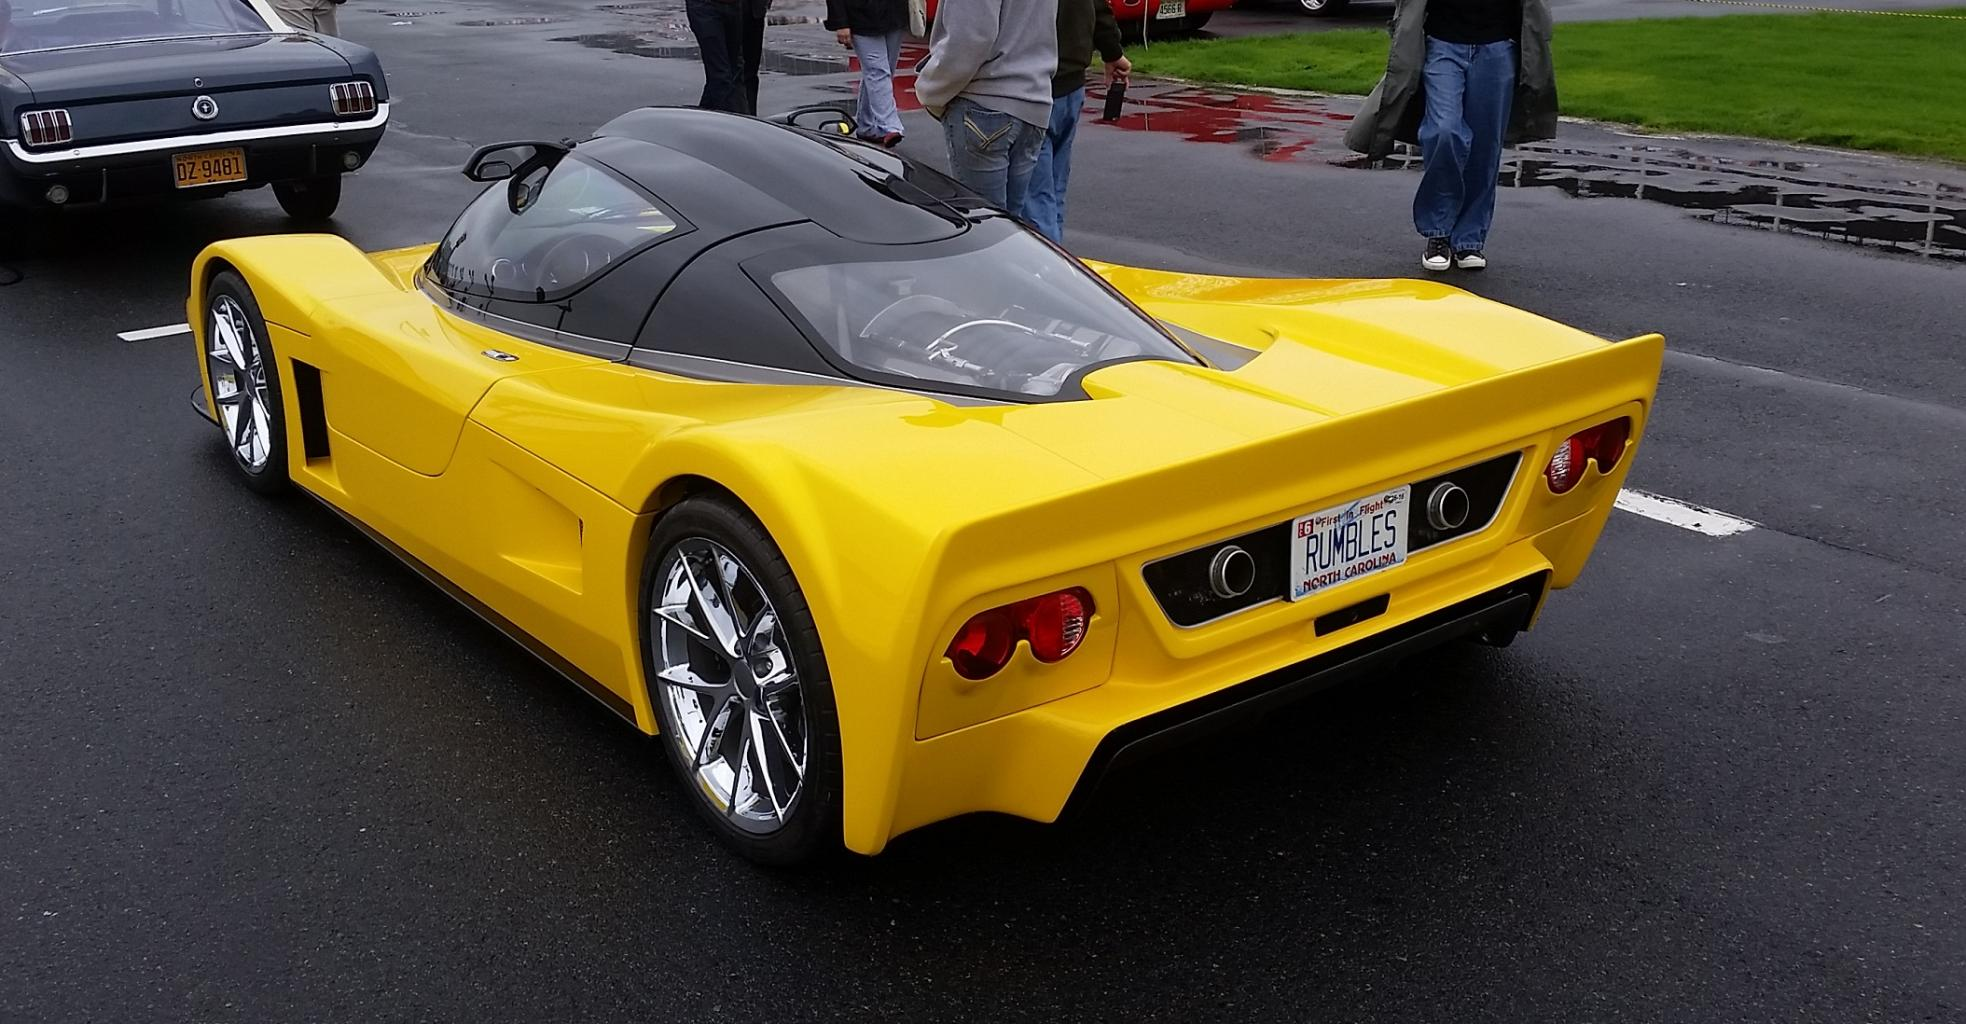 """Superlite SL-C with street tail. Note the """"ducktail"""" spoiler and lack of a rear wing, as well as a deeper bodywork that covers the rear wheels."""